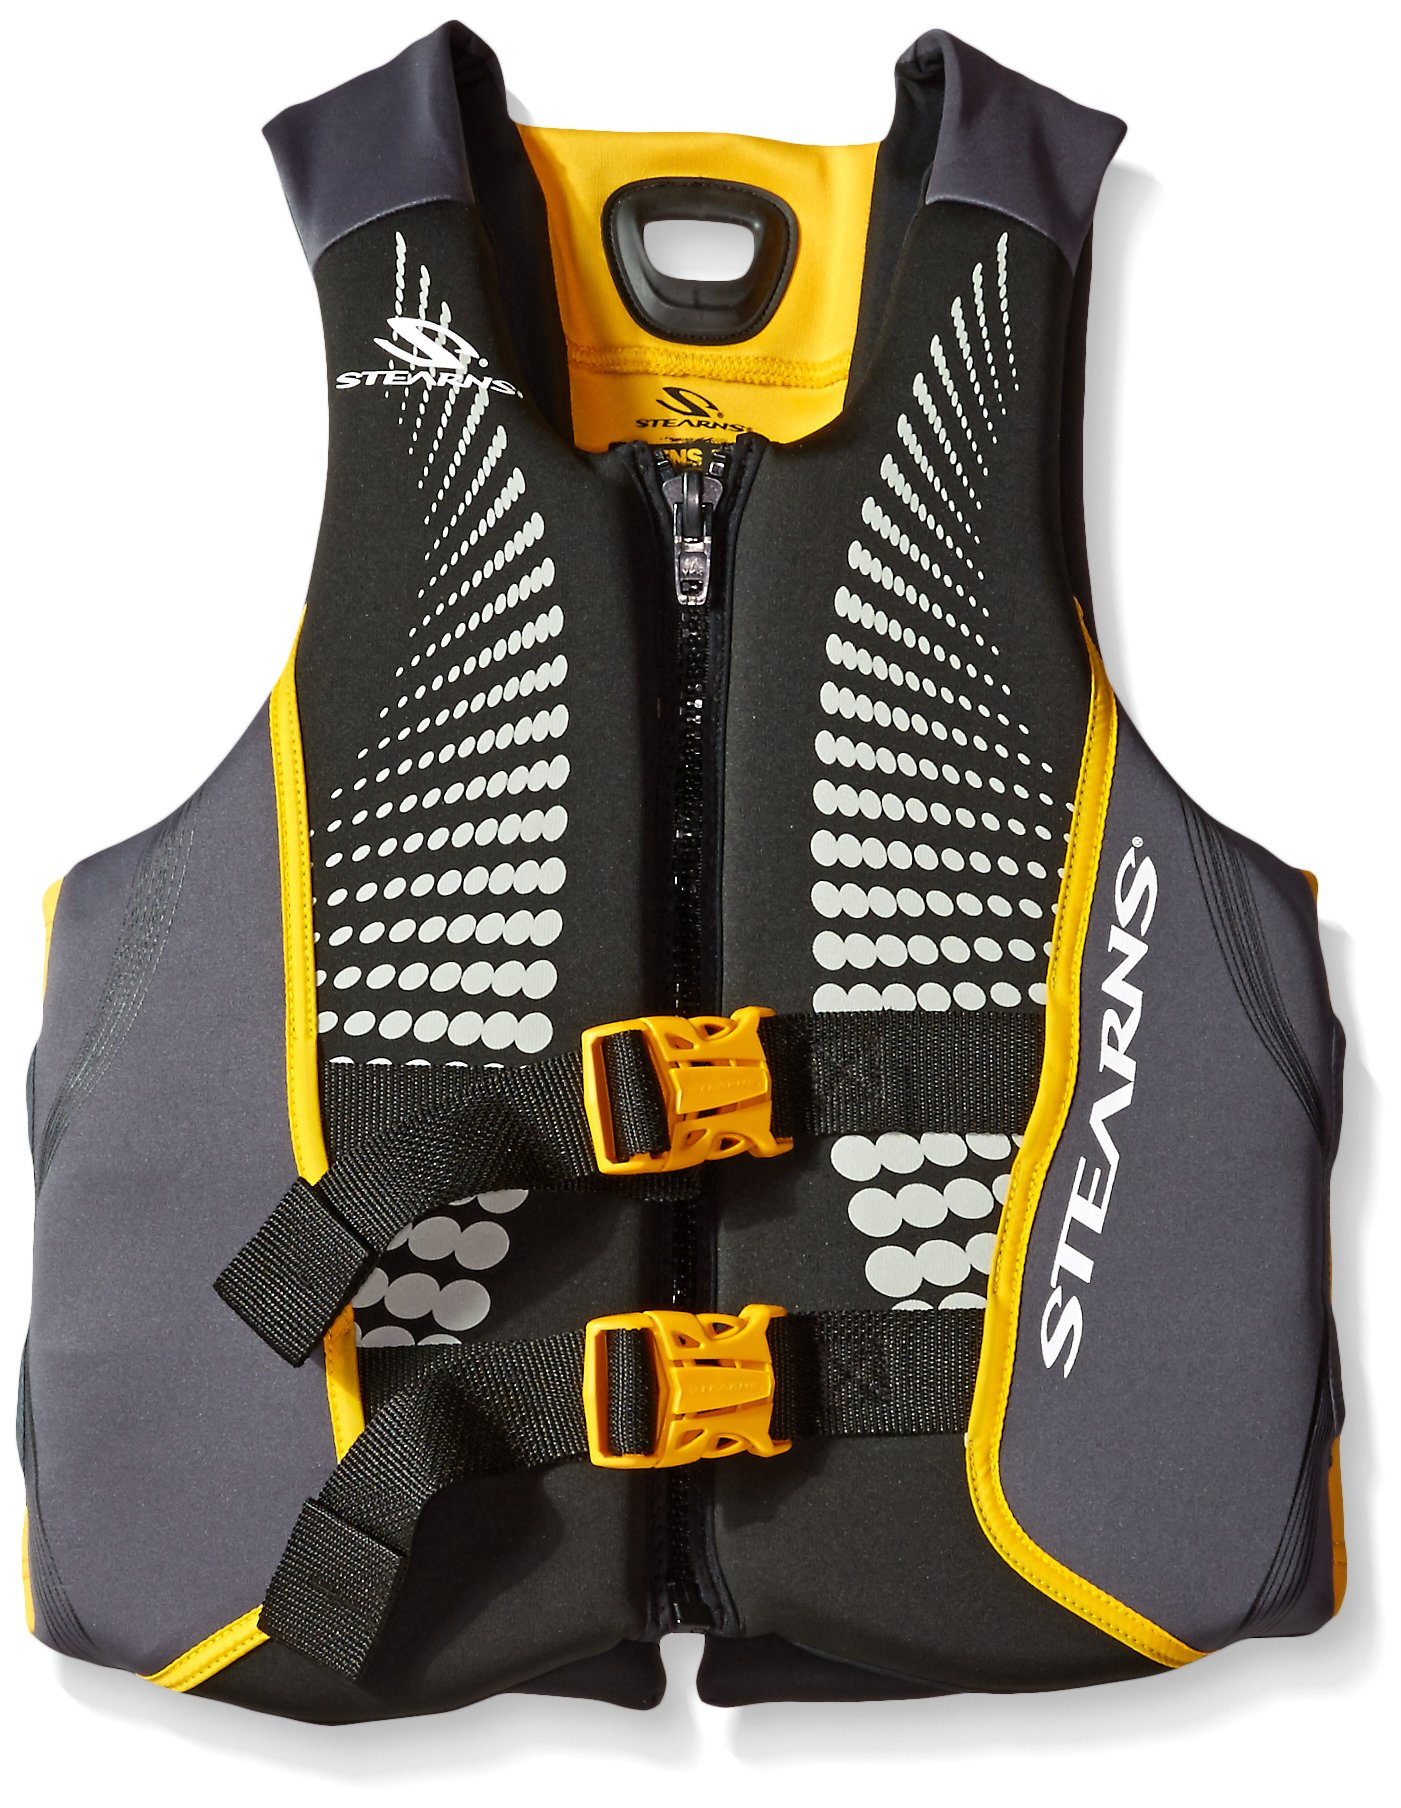 Stearns Men's V1 Series Hydroprene Life Jacket, Gold, X-Large by Stearns